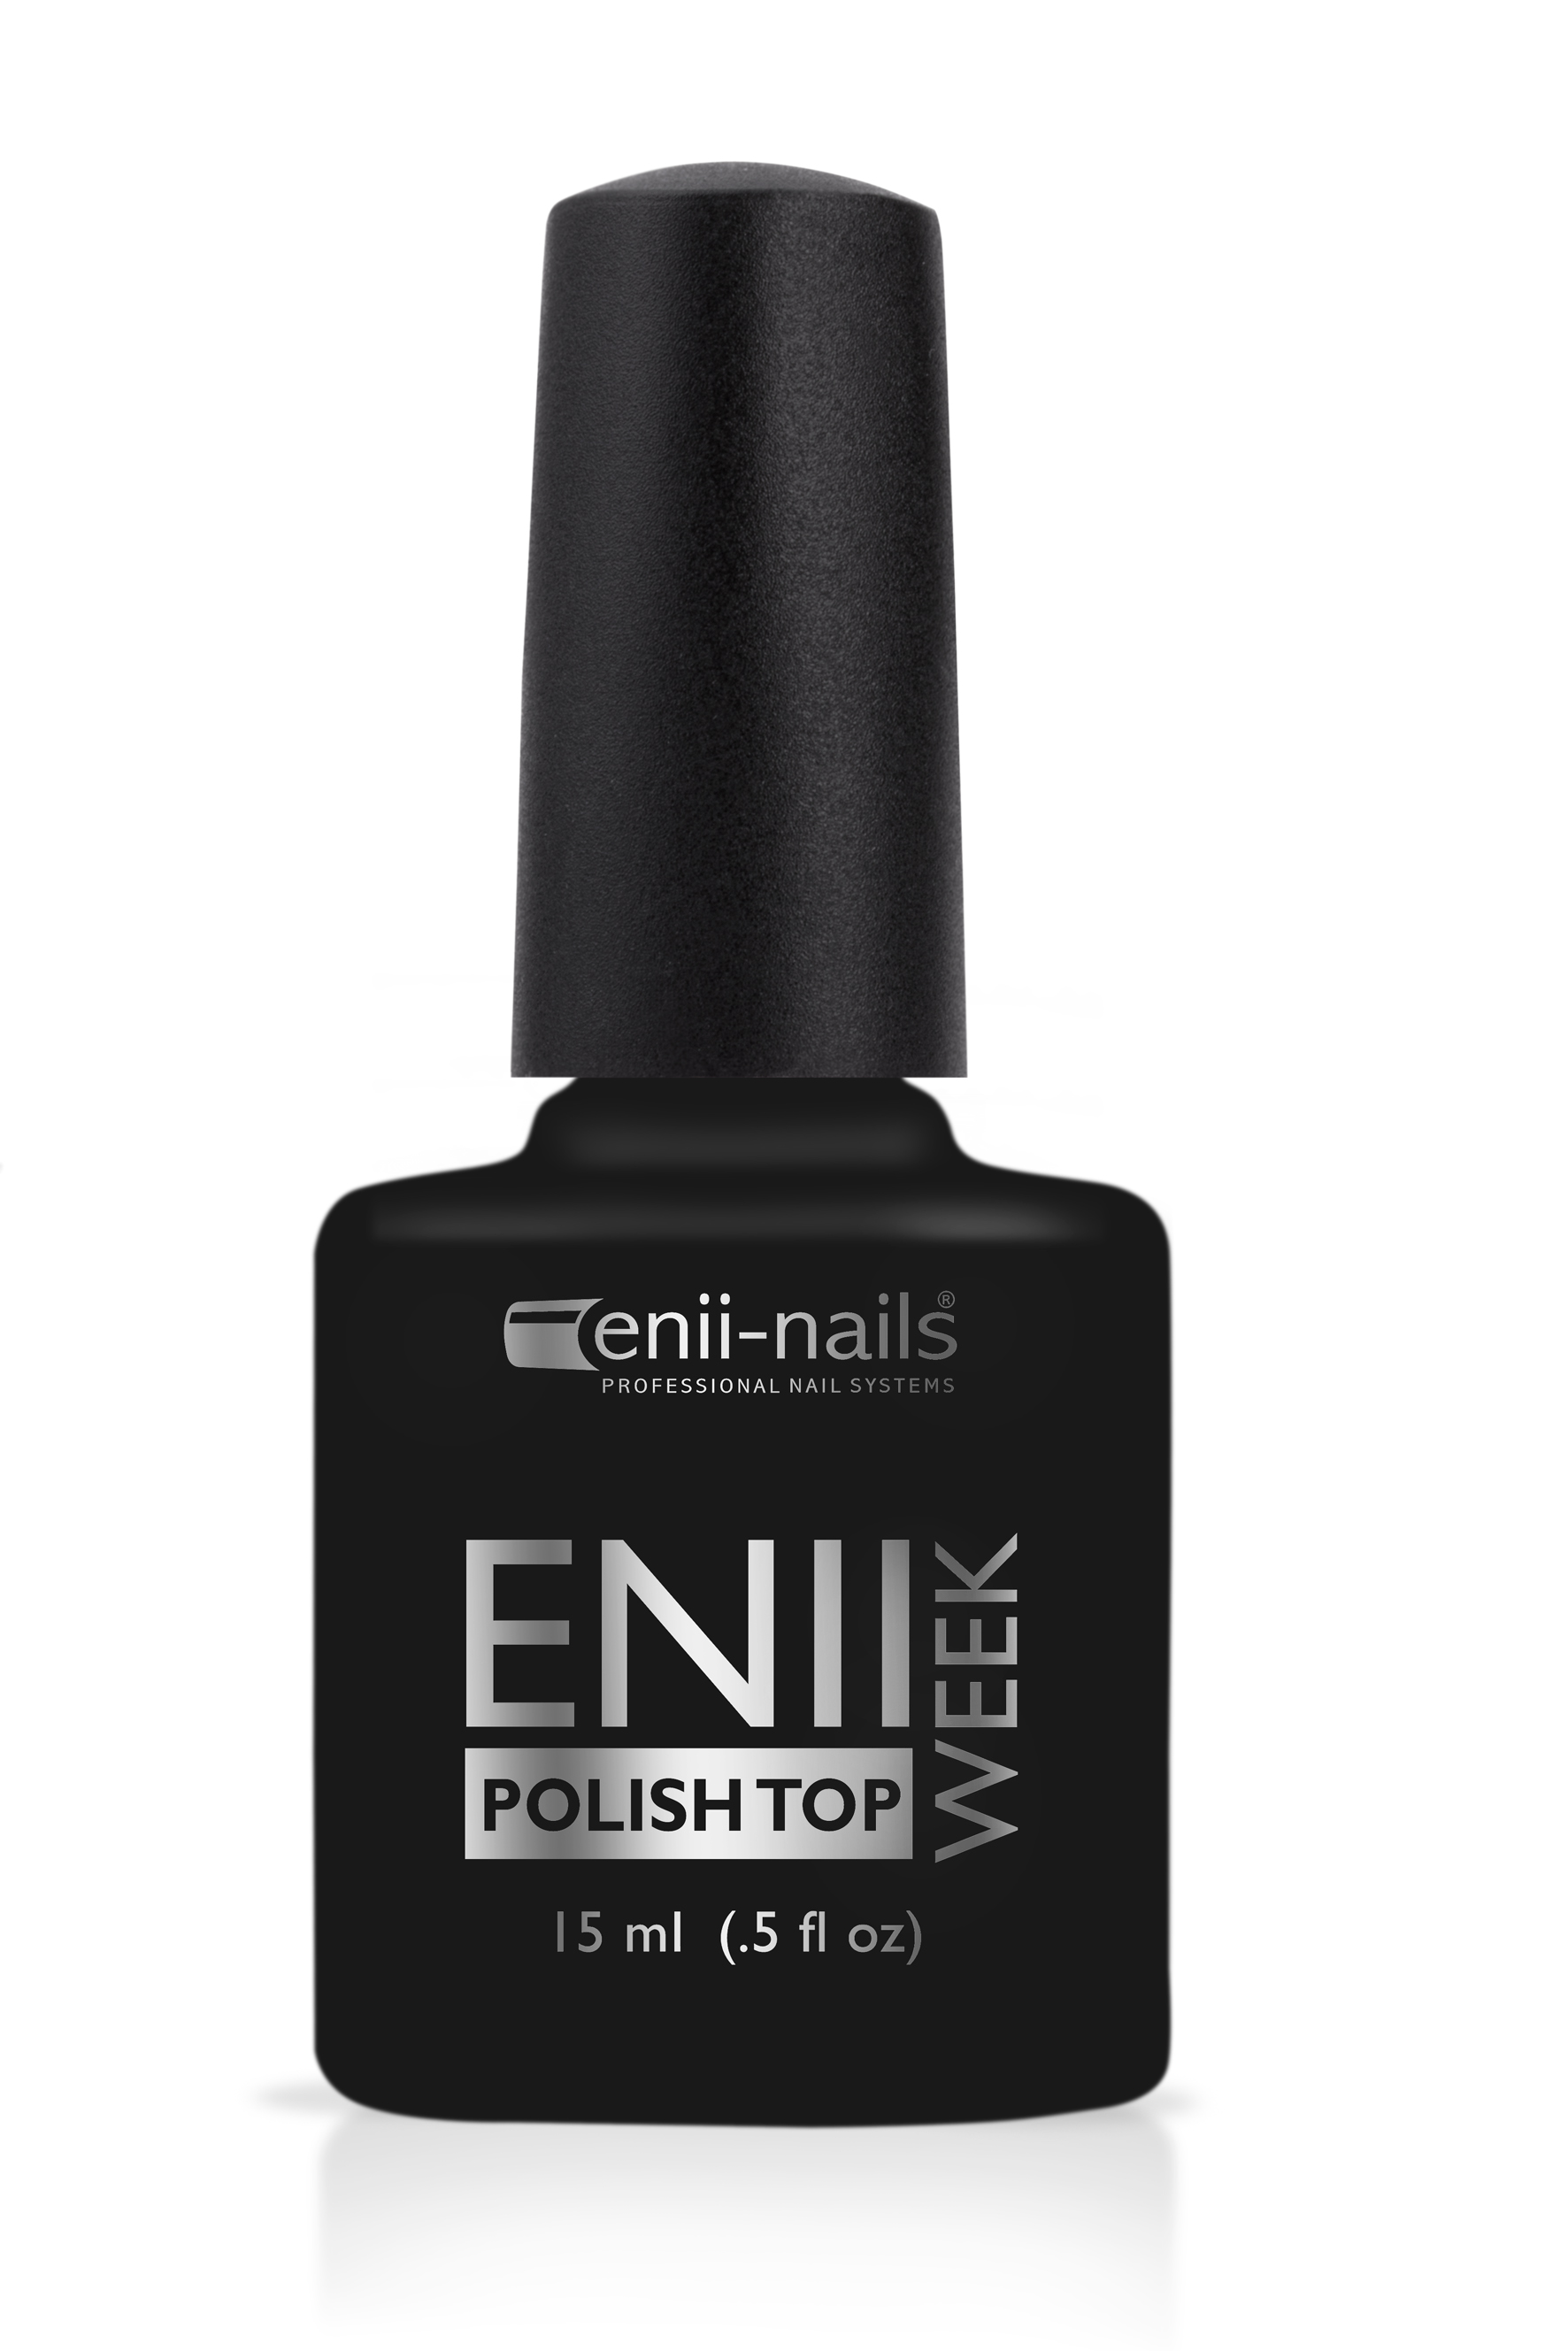 ENII-NAILS Enii - week polish TOP COAT 15 ml